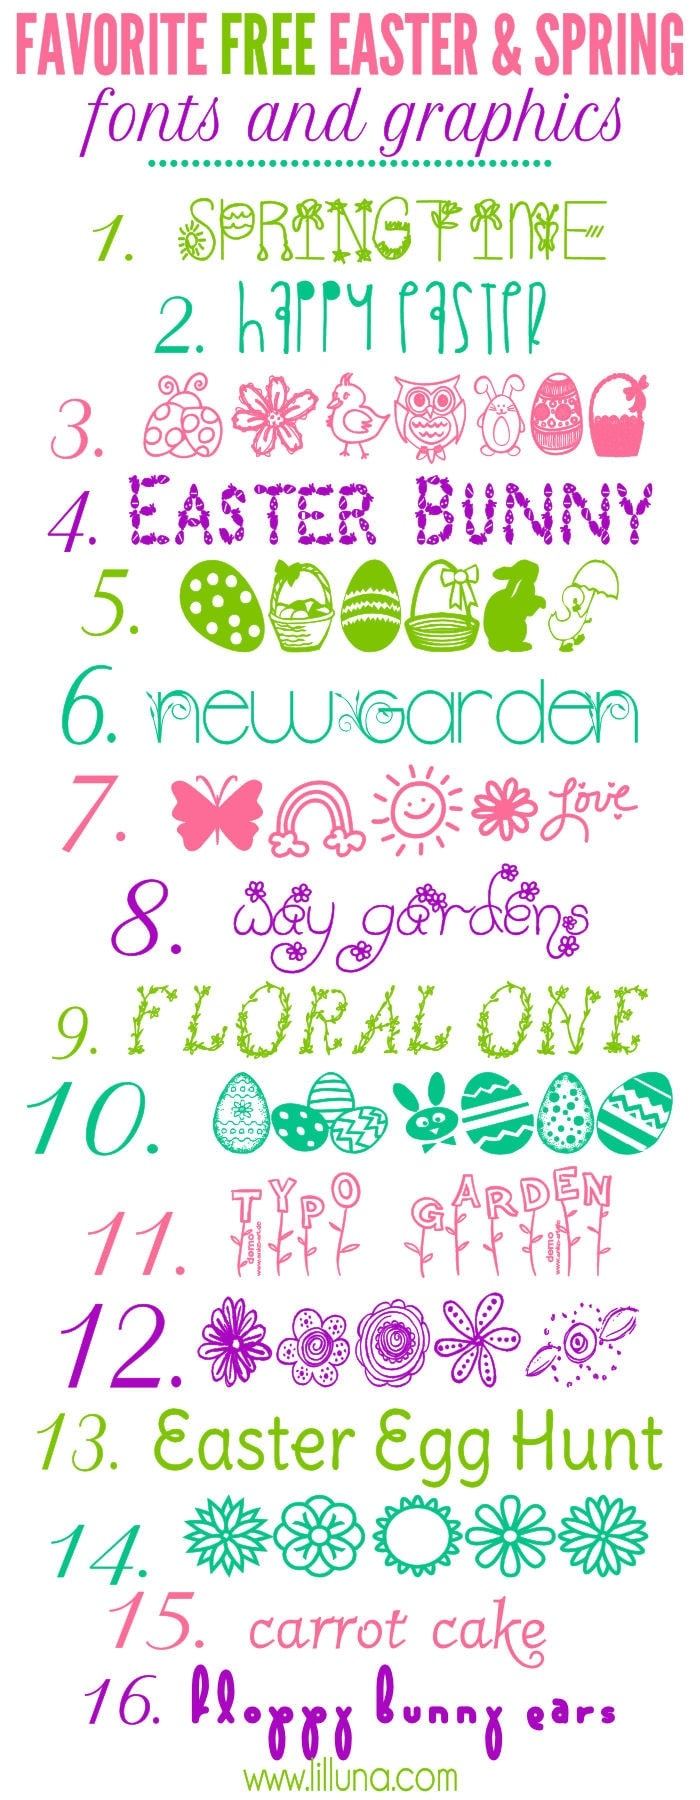 Favorite FREE Easter and Spring Fonts and Graphics on { lilluna.com }